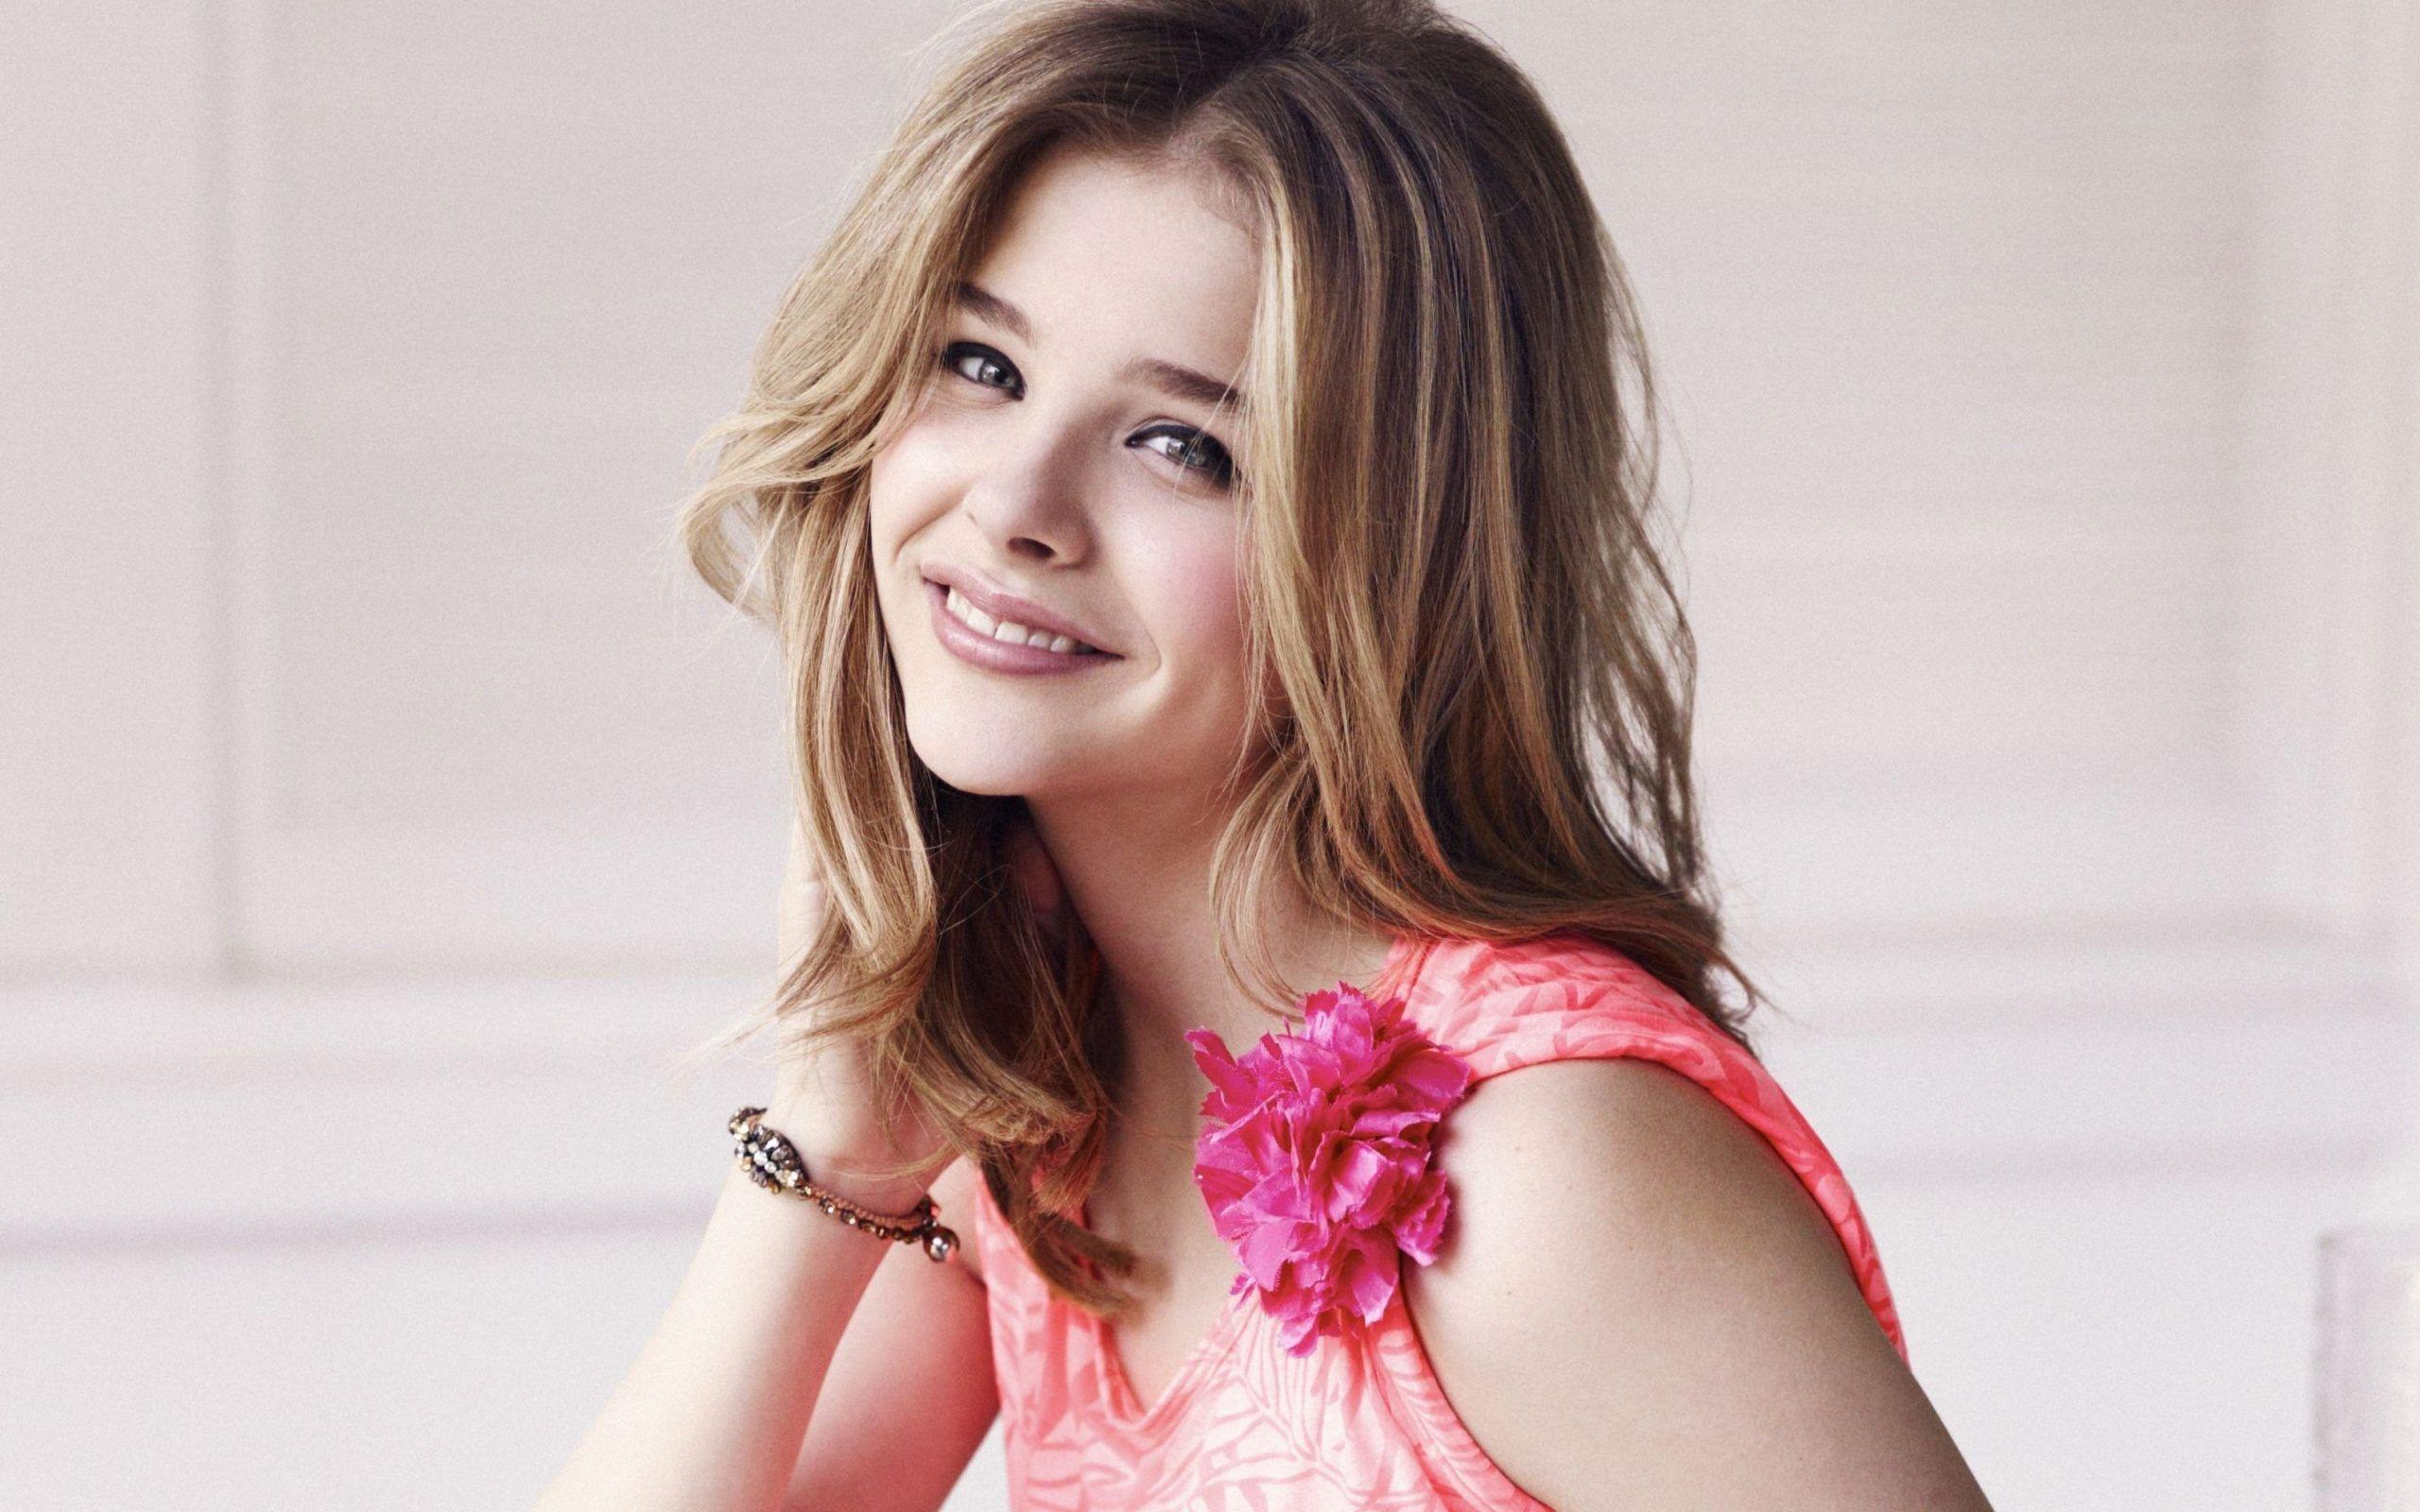 Gorgeous Chloe Moretz, HD Celebrities, 4k Wallpapers, Image